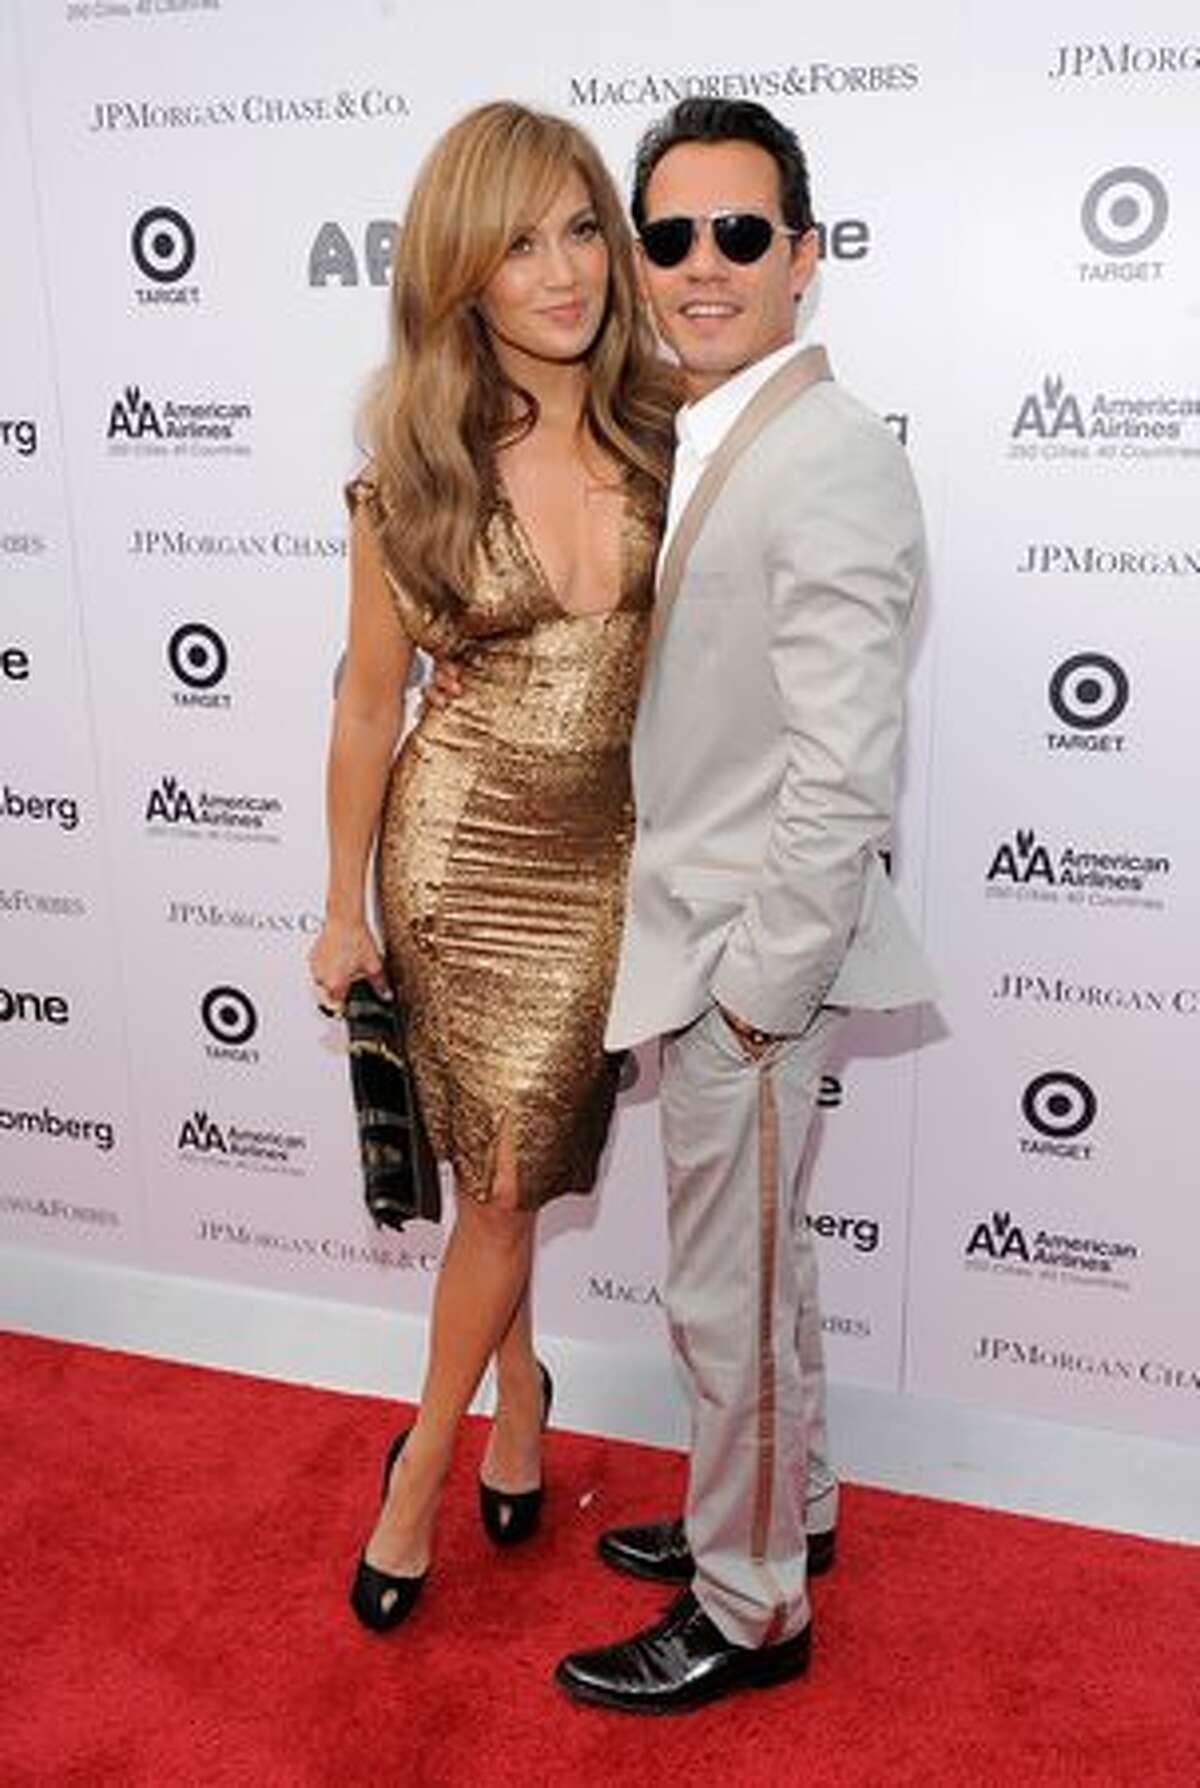 Singer\actress Jennifer Lopez and singer Marc Anthony attend the 2010 Apollo Theater Spring Benefit Concert & Awards Ceremony at The Apollo Theater.